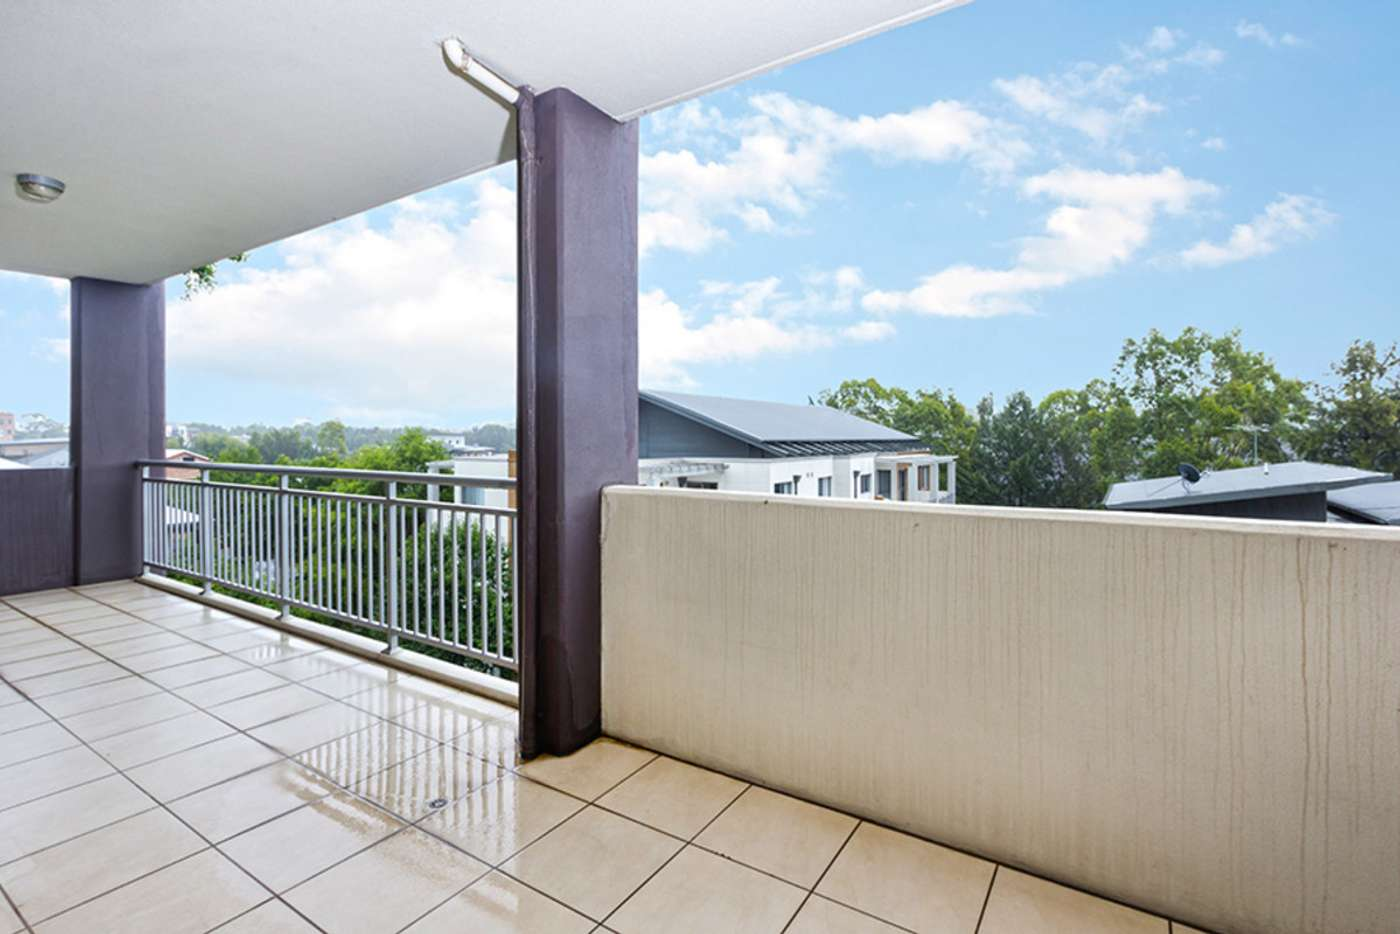 Sixth view of Homely apartment listing, 43/4-10 Benedict Court, Holroyd NSW 2142